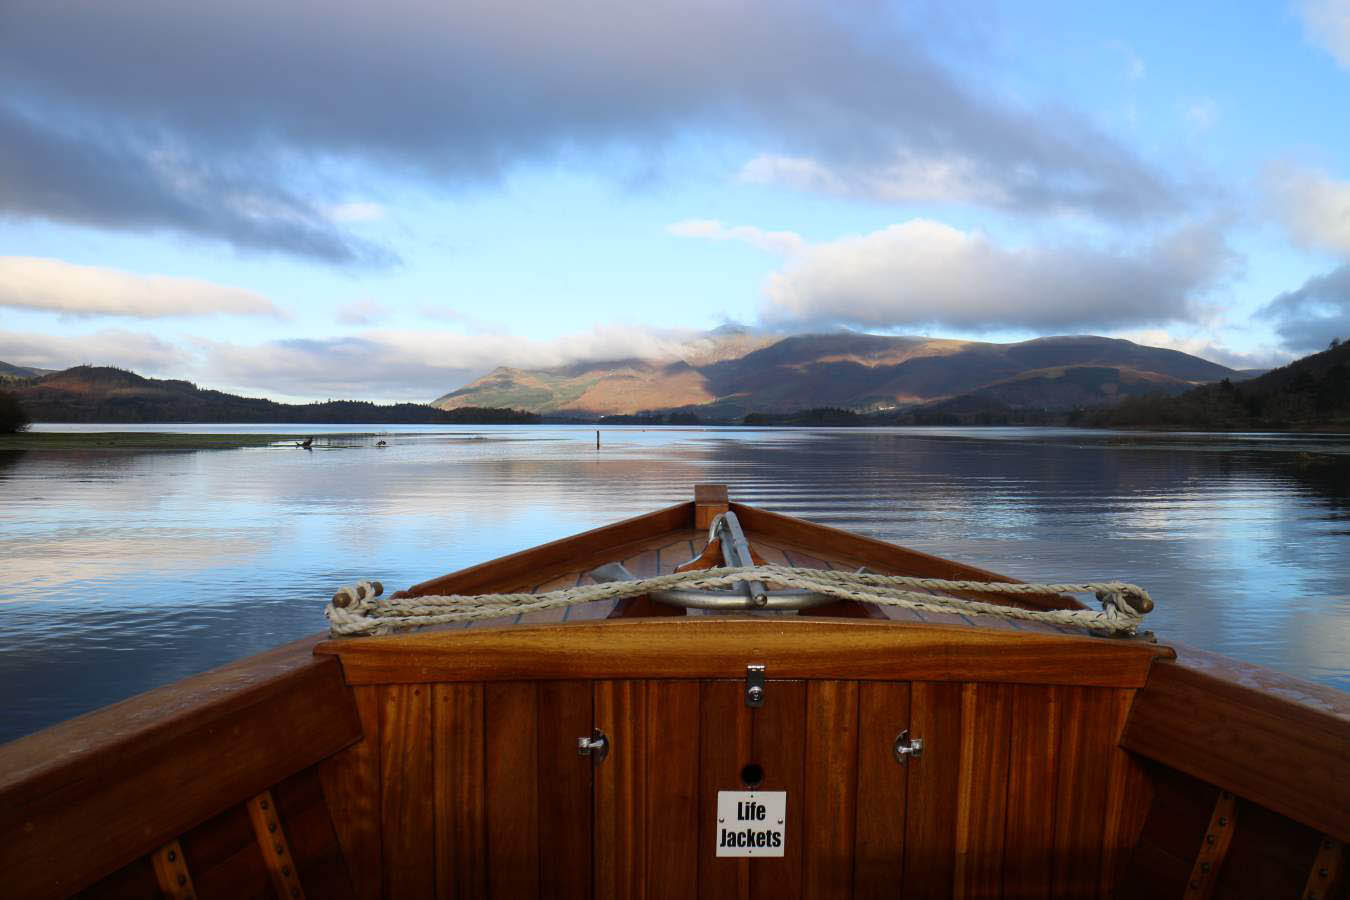 image of a boat trip on derwentwater